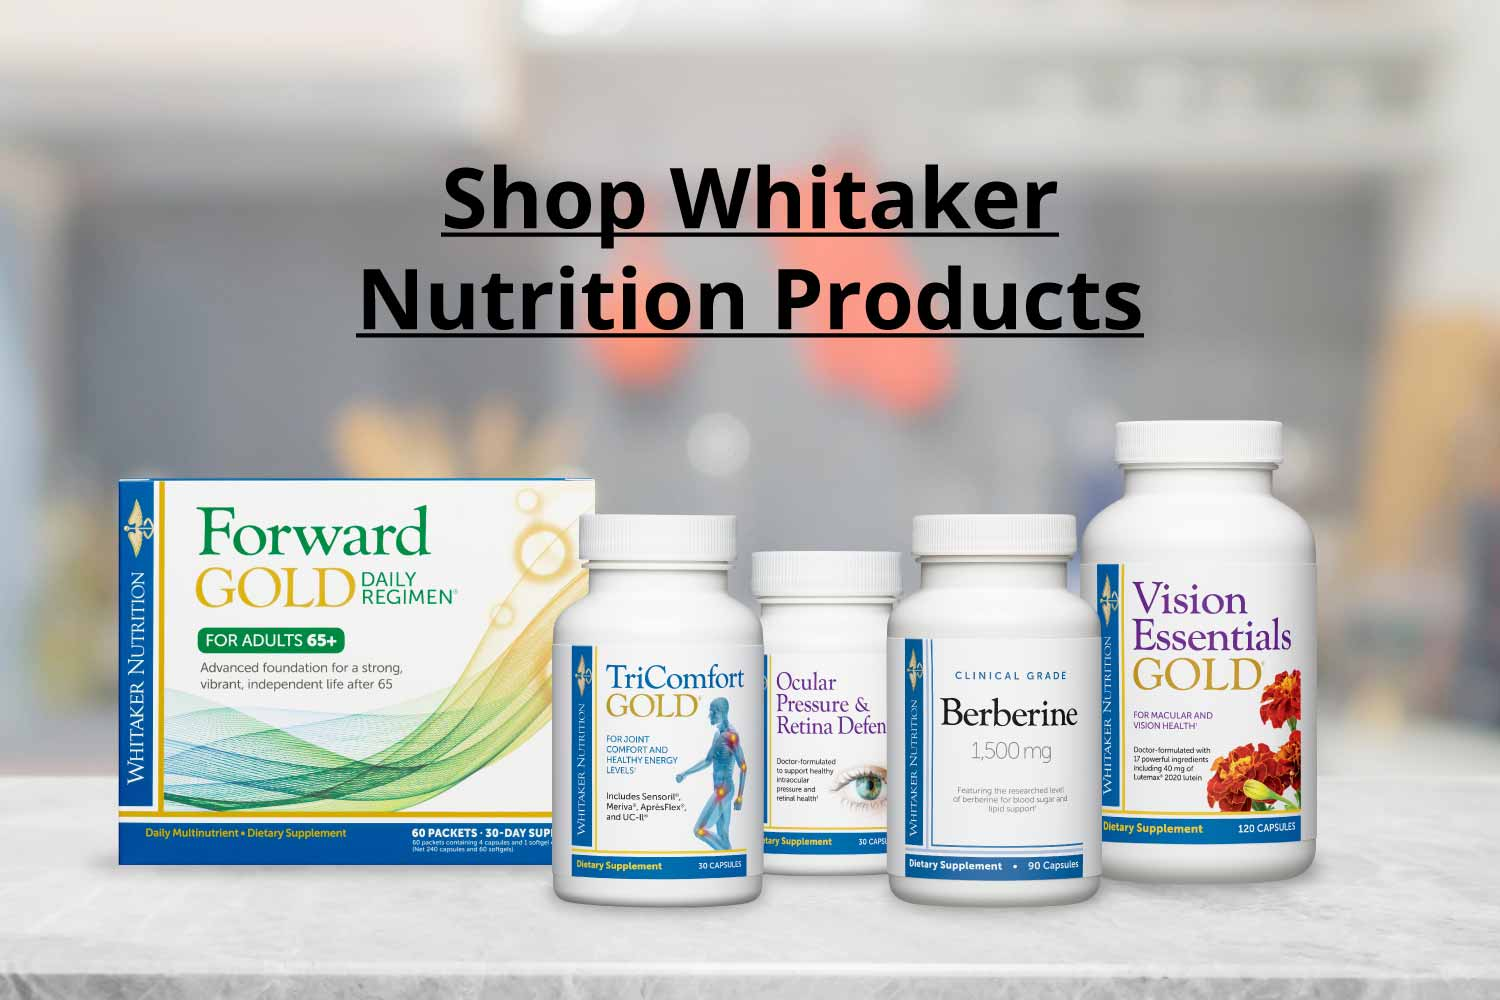 Shop Whitaker Nutrition Products